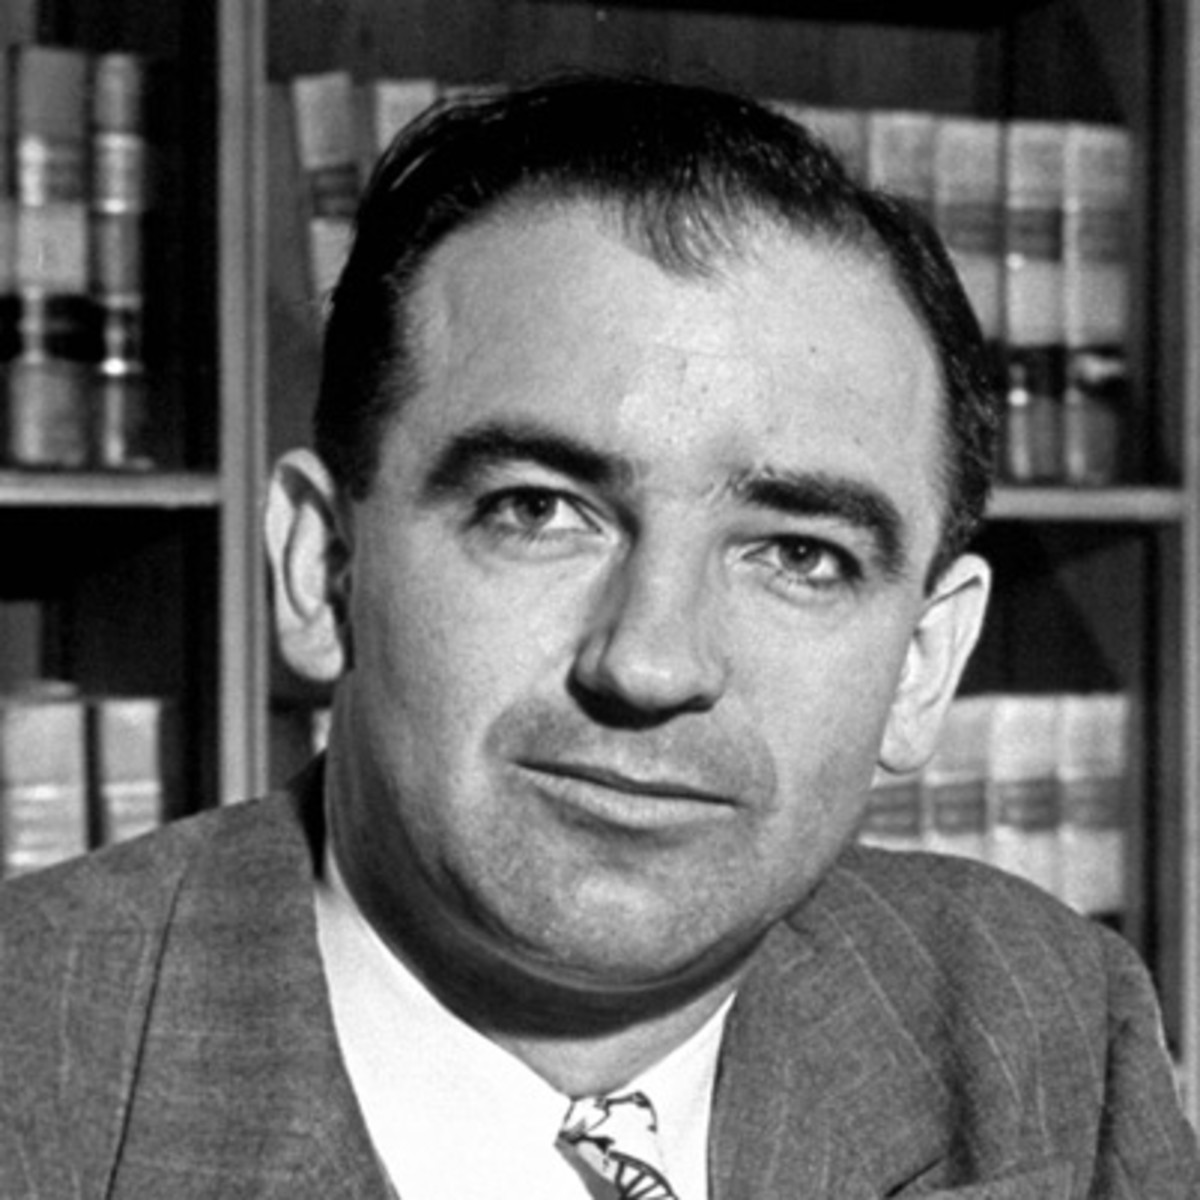 an biography of joseph mccarthy a senator Mccarthyism is the practice of making accusations of subversion or treason without proper regard for evidence the term refers to us senator joseph mccarthy and has its origins in the period in the united states known as the second red scare, lasting roughly from 1947 to 1956 and characterized by heightened political repression as well as a.